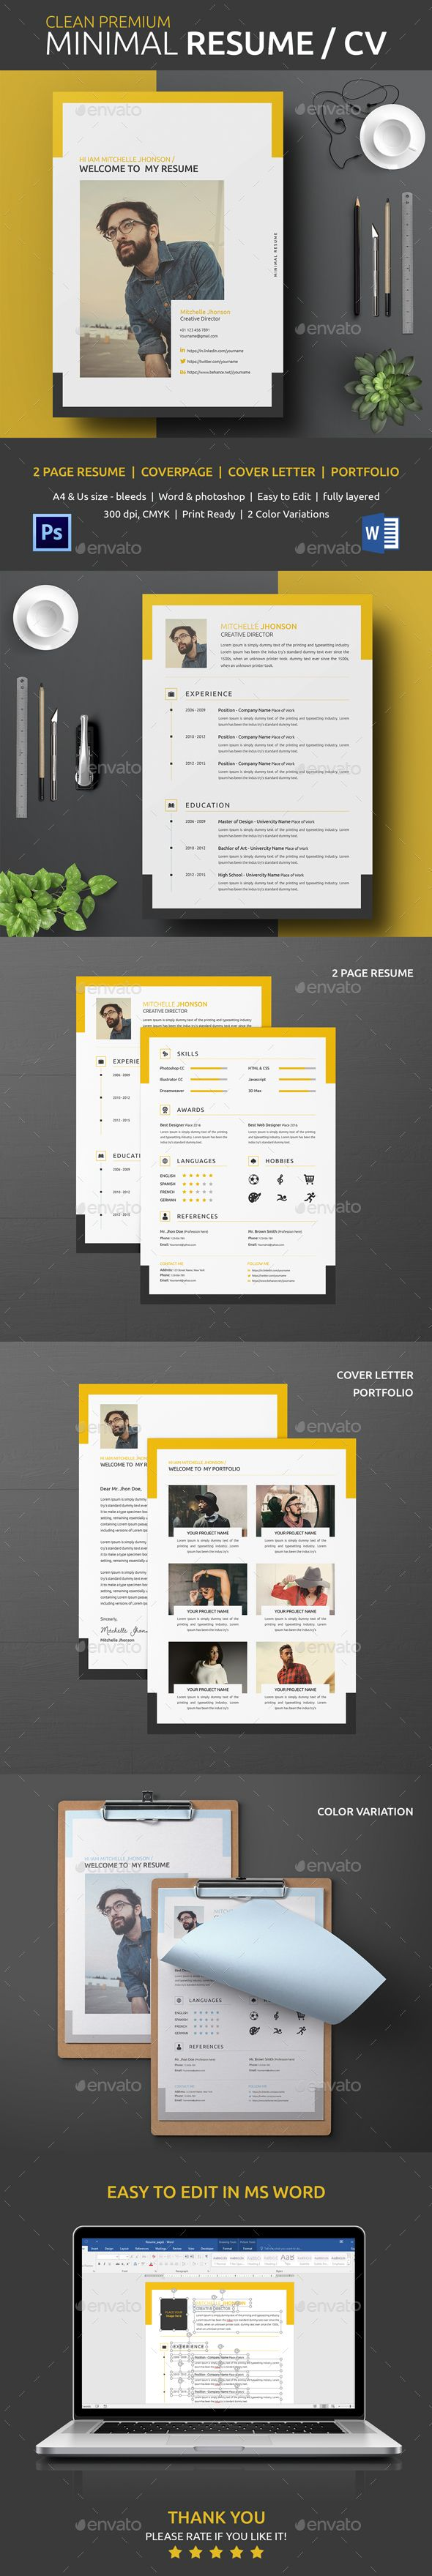 business letter format word 2010%0A TOP Professional Resume Templates Pinterest Buy Resume by themedevisers on  GraphicRiver Resume CV Template is a